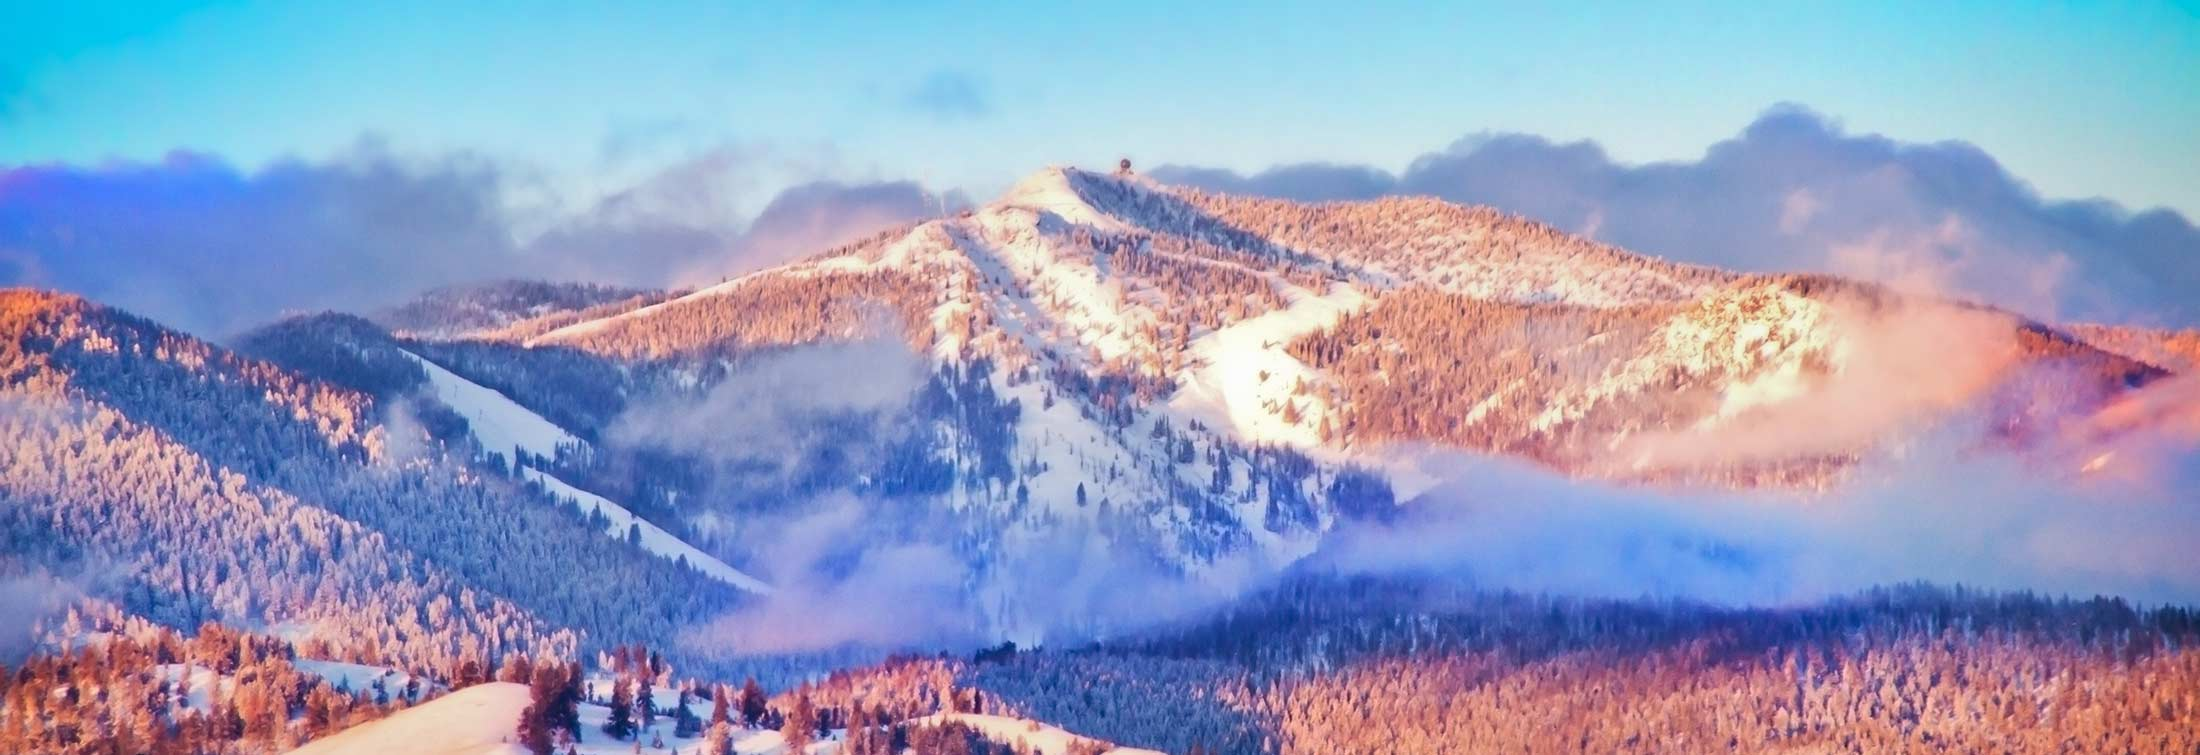 A Day of Skiing at Montana's Snowbowl